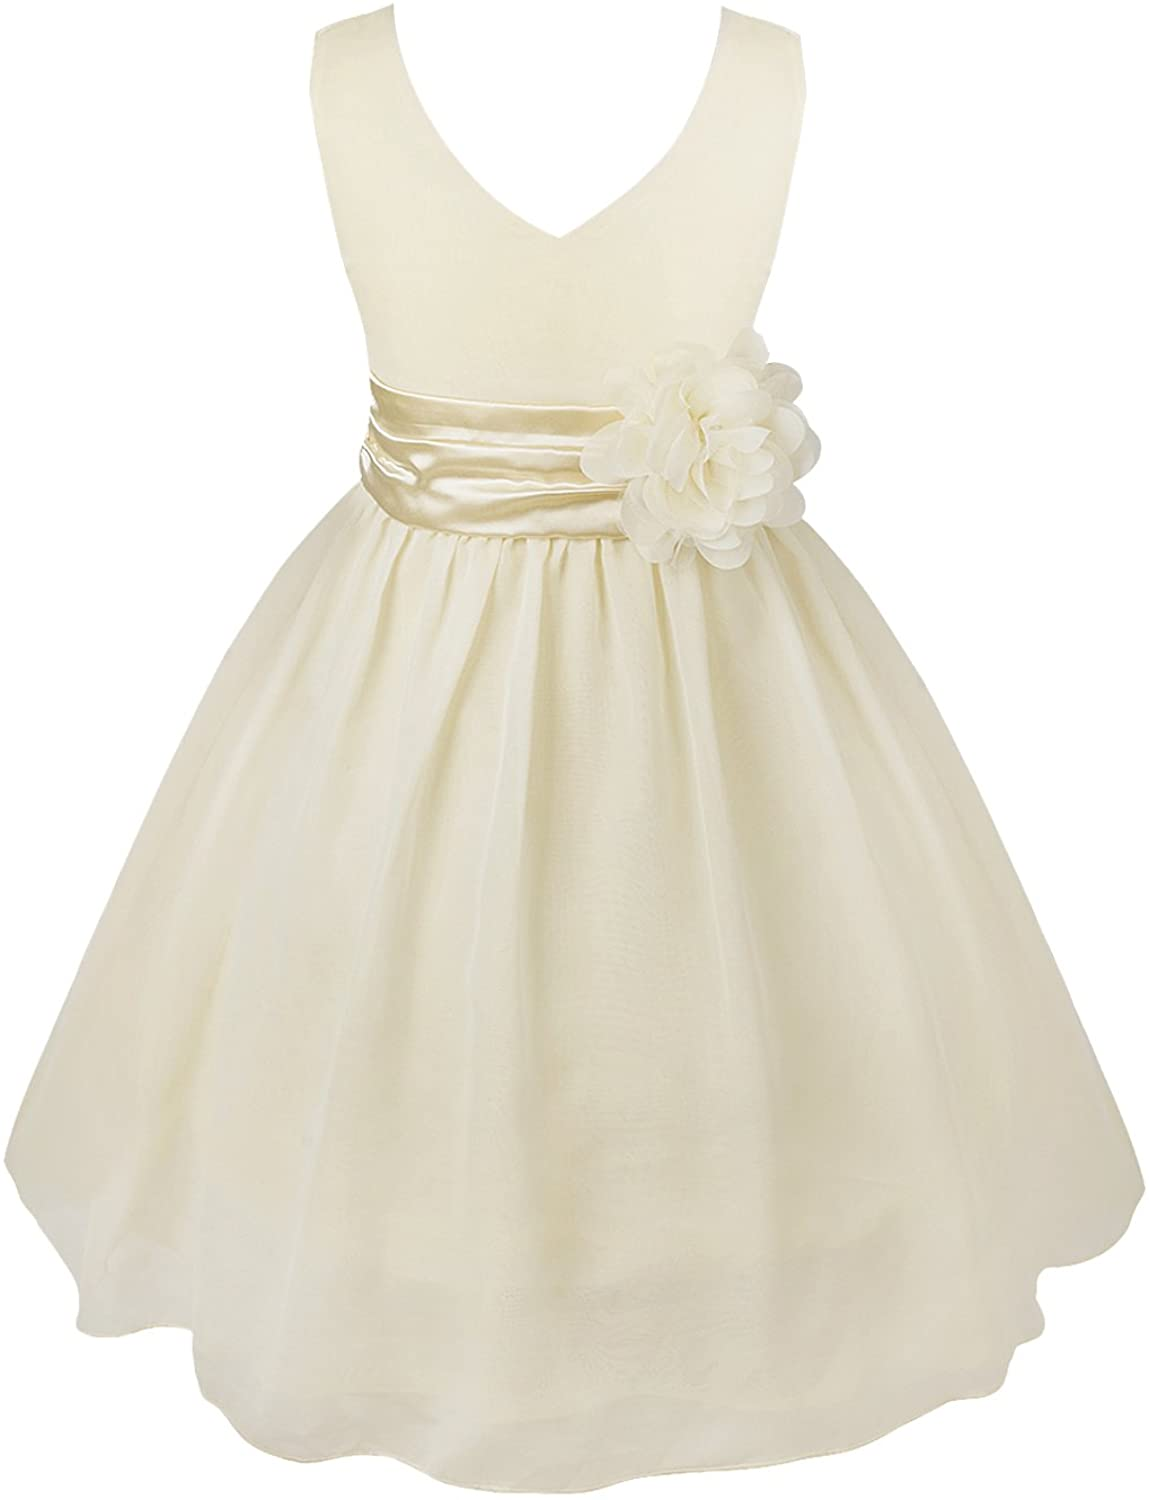 easyforever Kids Girls V-Neck 3D Flower Chiffon Princess Dress Bowknot Back Wedding Pageant Party Ball Gown